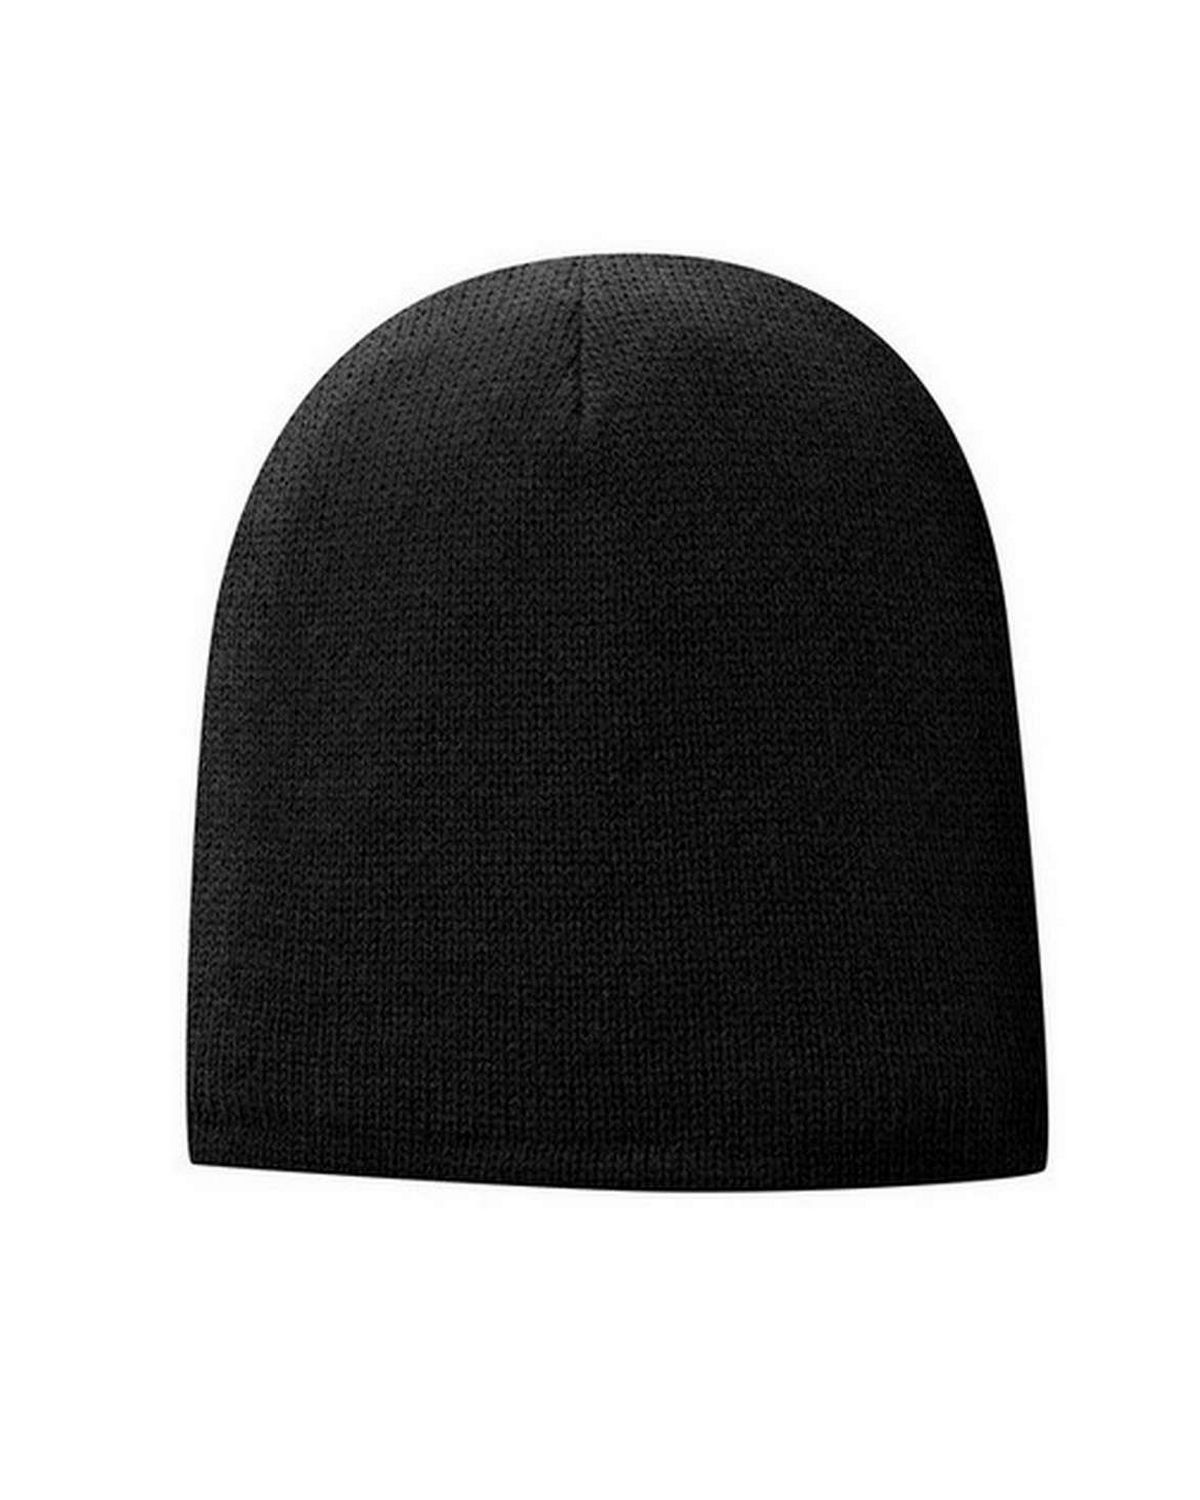 Port & Company CP91L Fleece Lined Beanie Cap